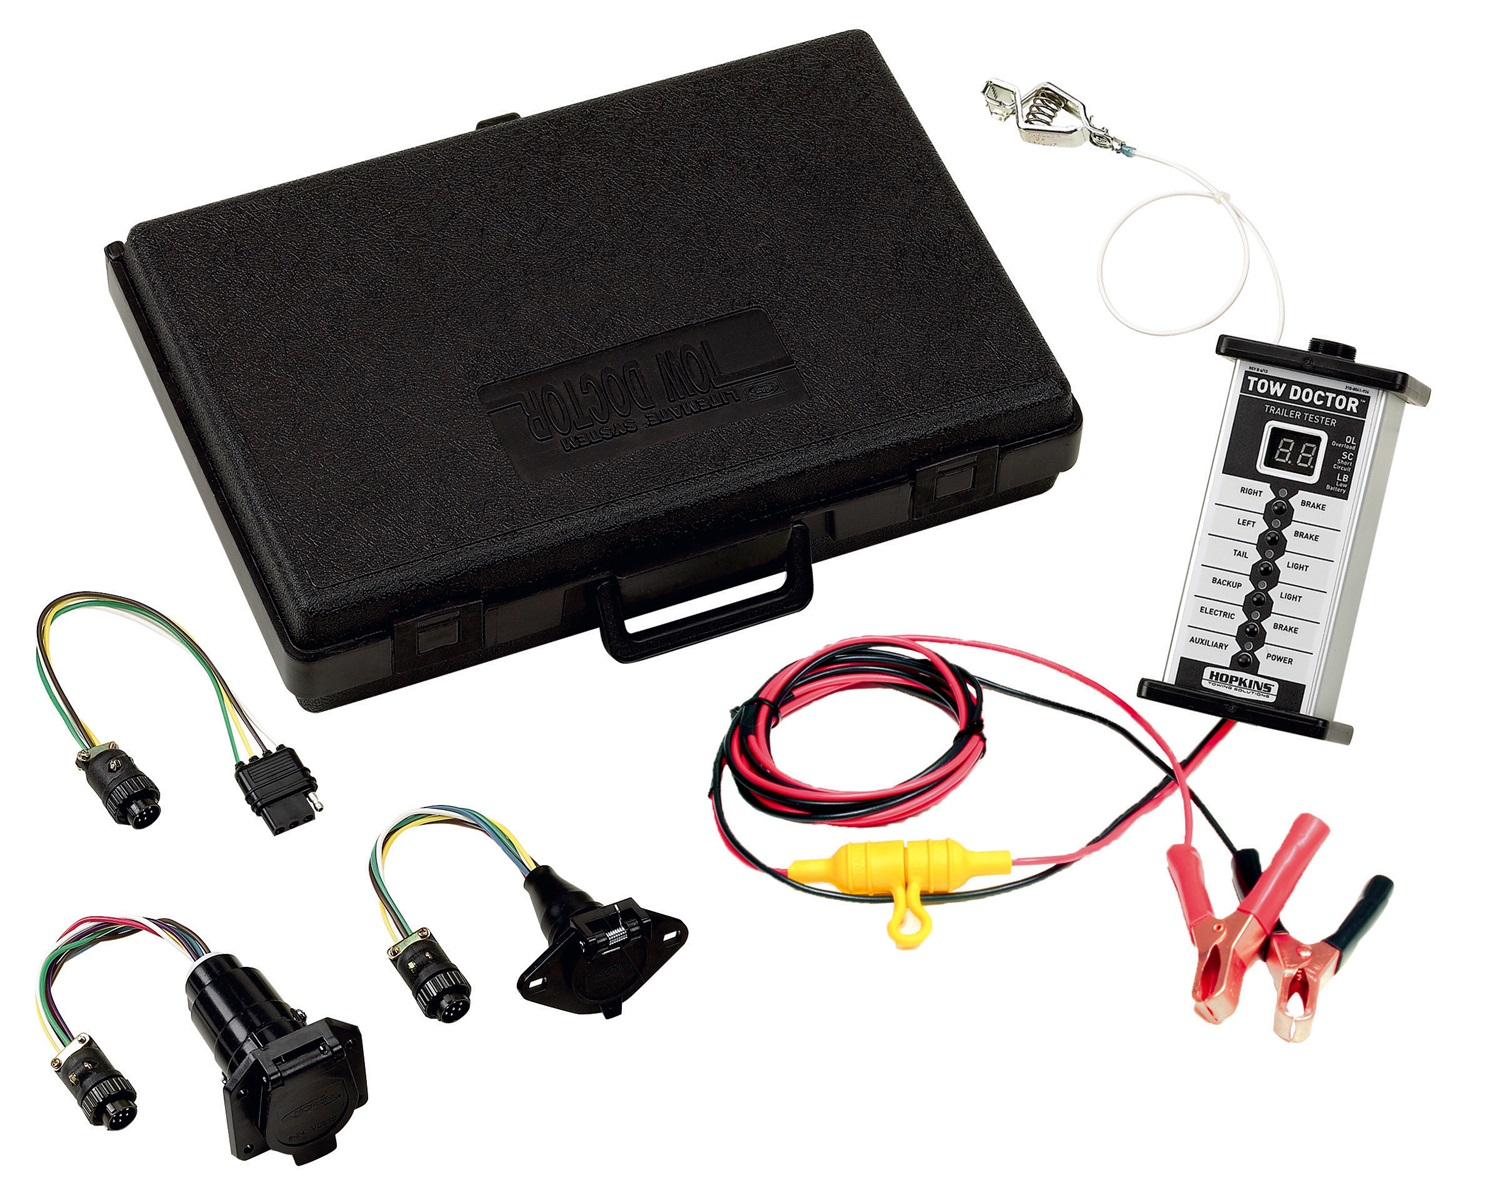 Test Trailer Wiring Harness Multimeter : New hopkins towing solution trailer wire harness test unit